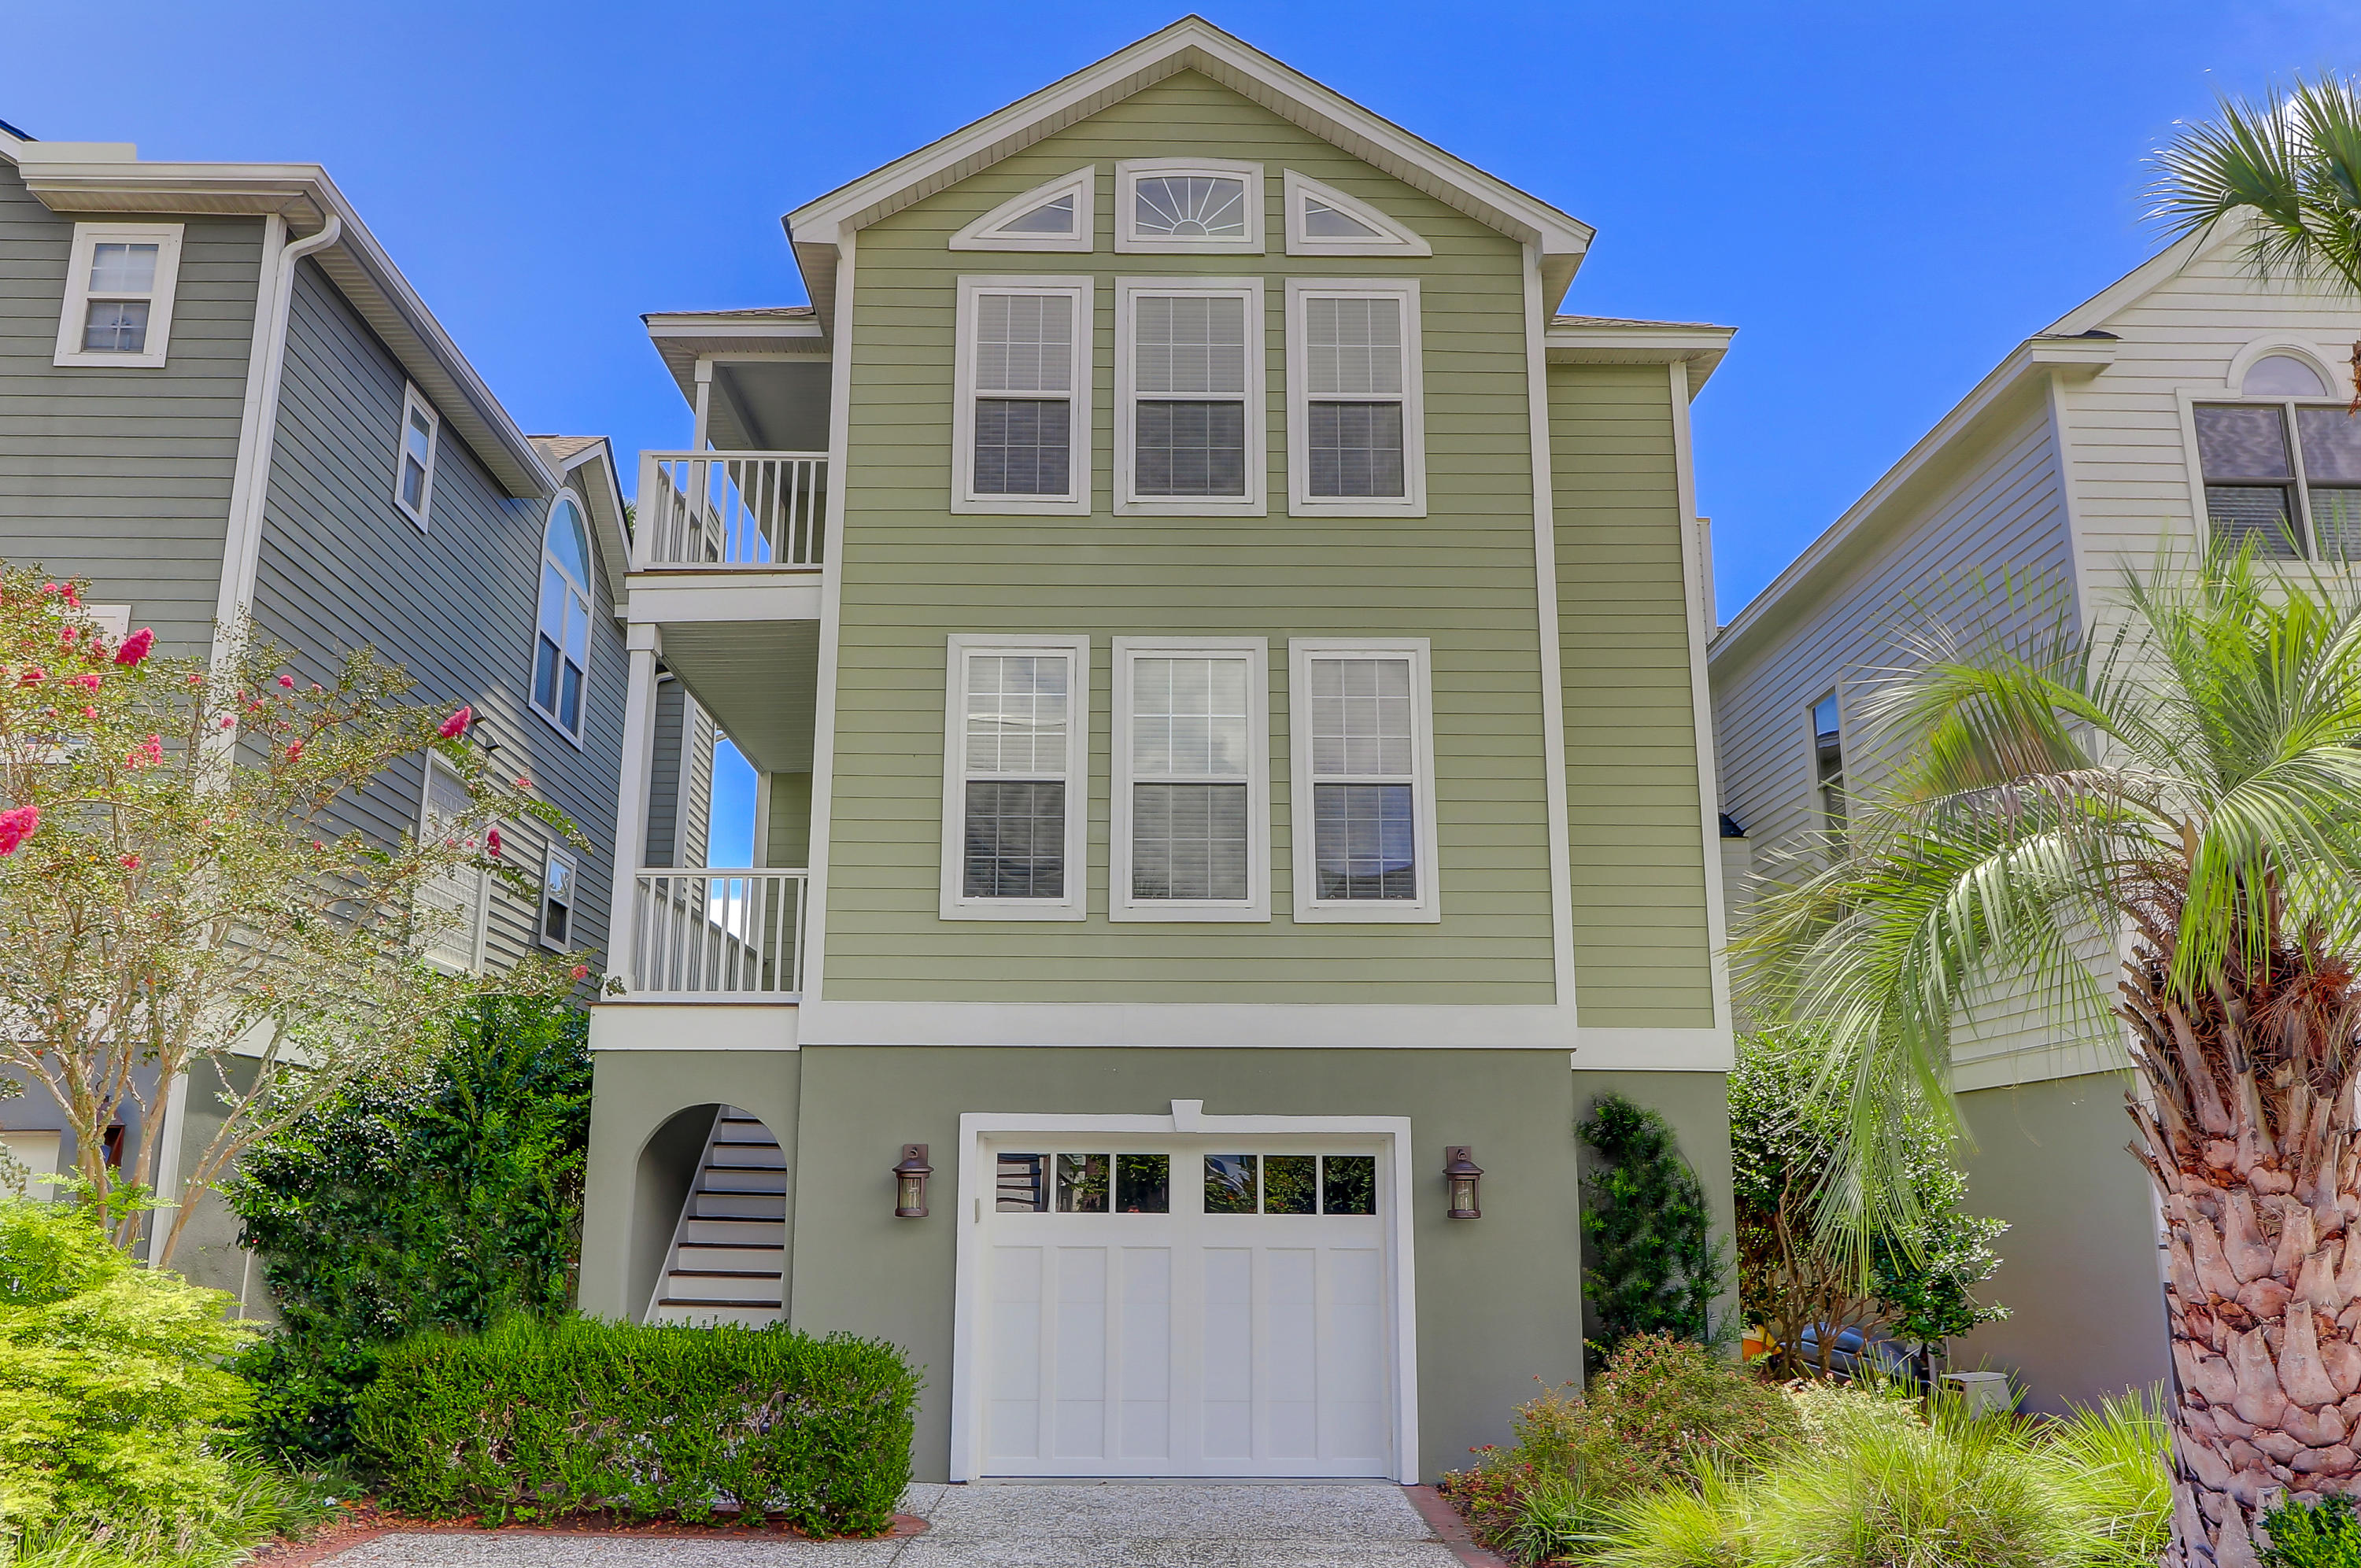 53 Morgans Cove Drive Isle of Palms $1,300,000.00